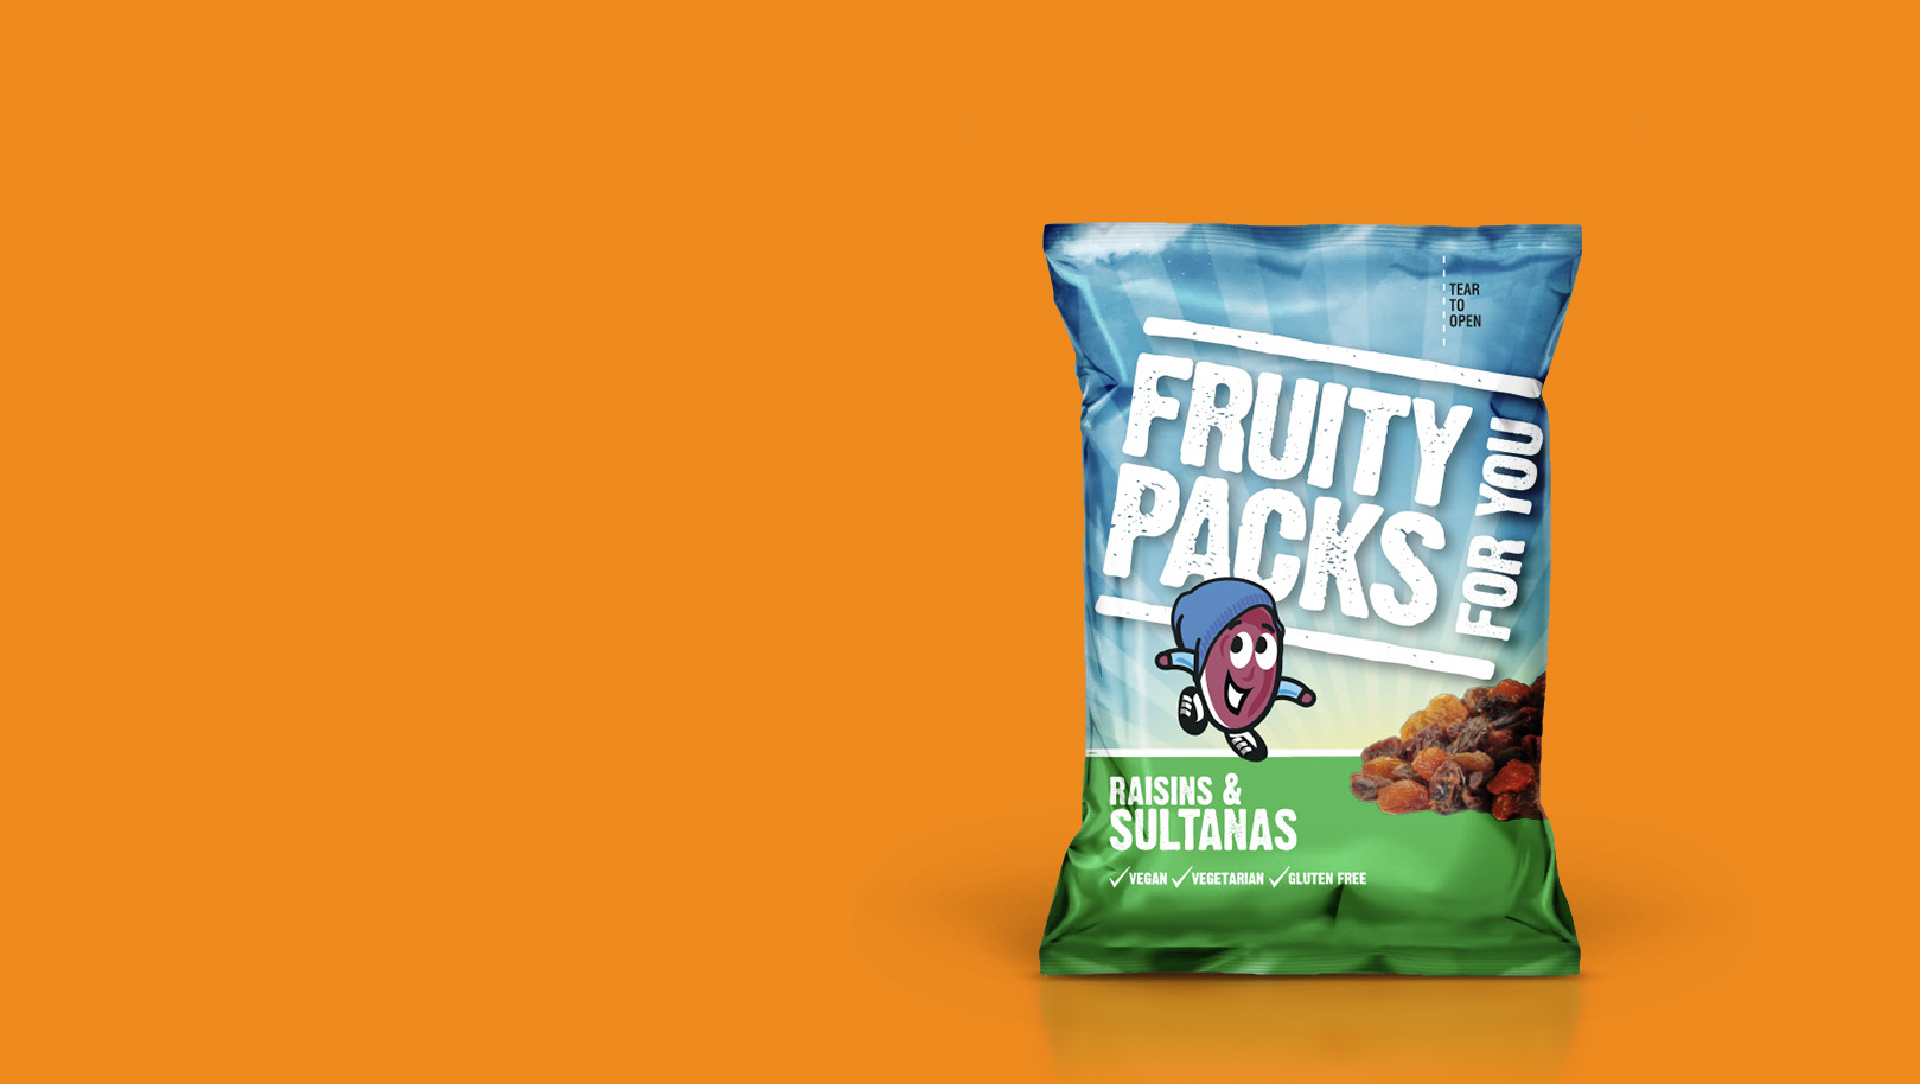 Fruity packs pack on an orange background